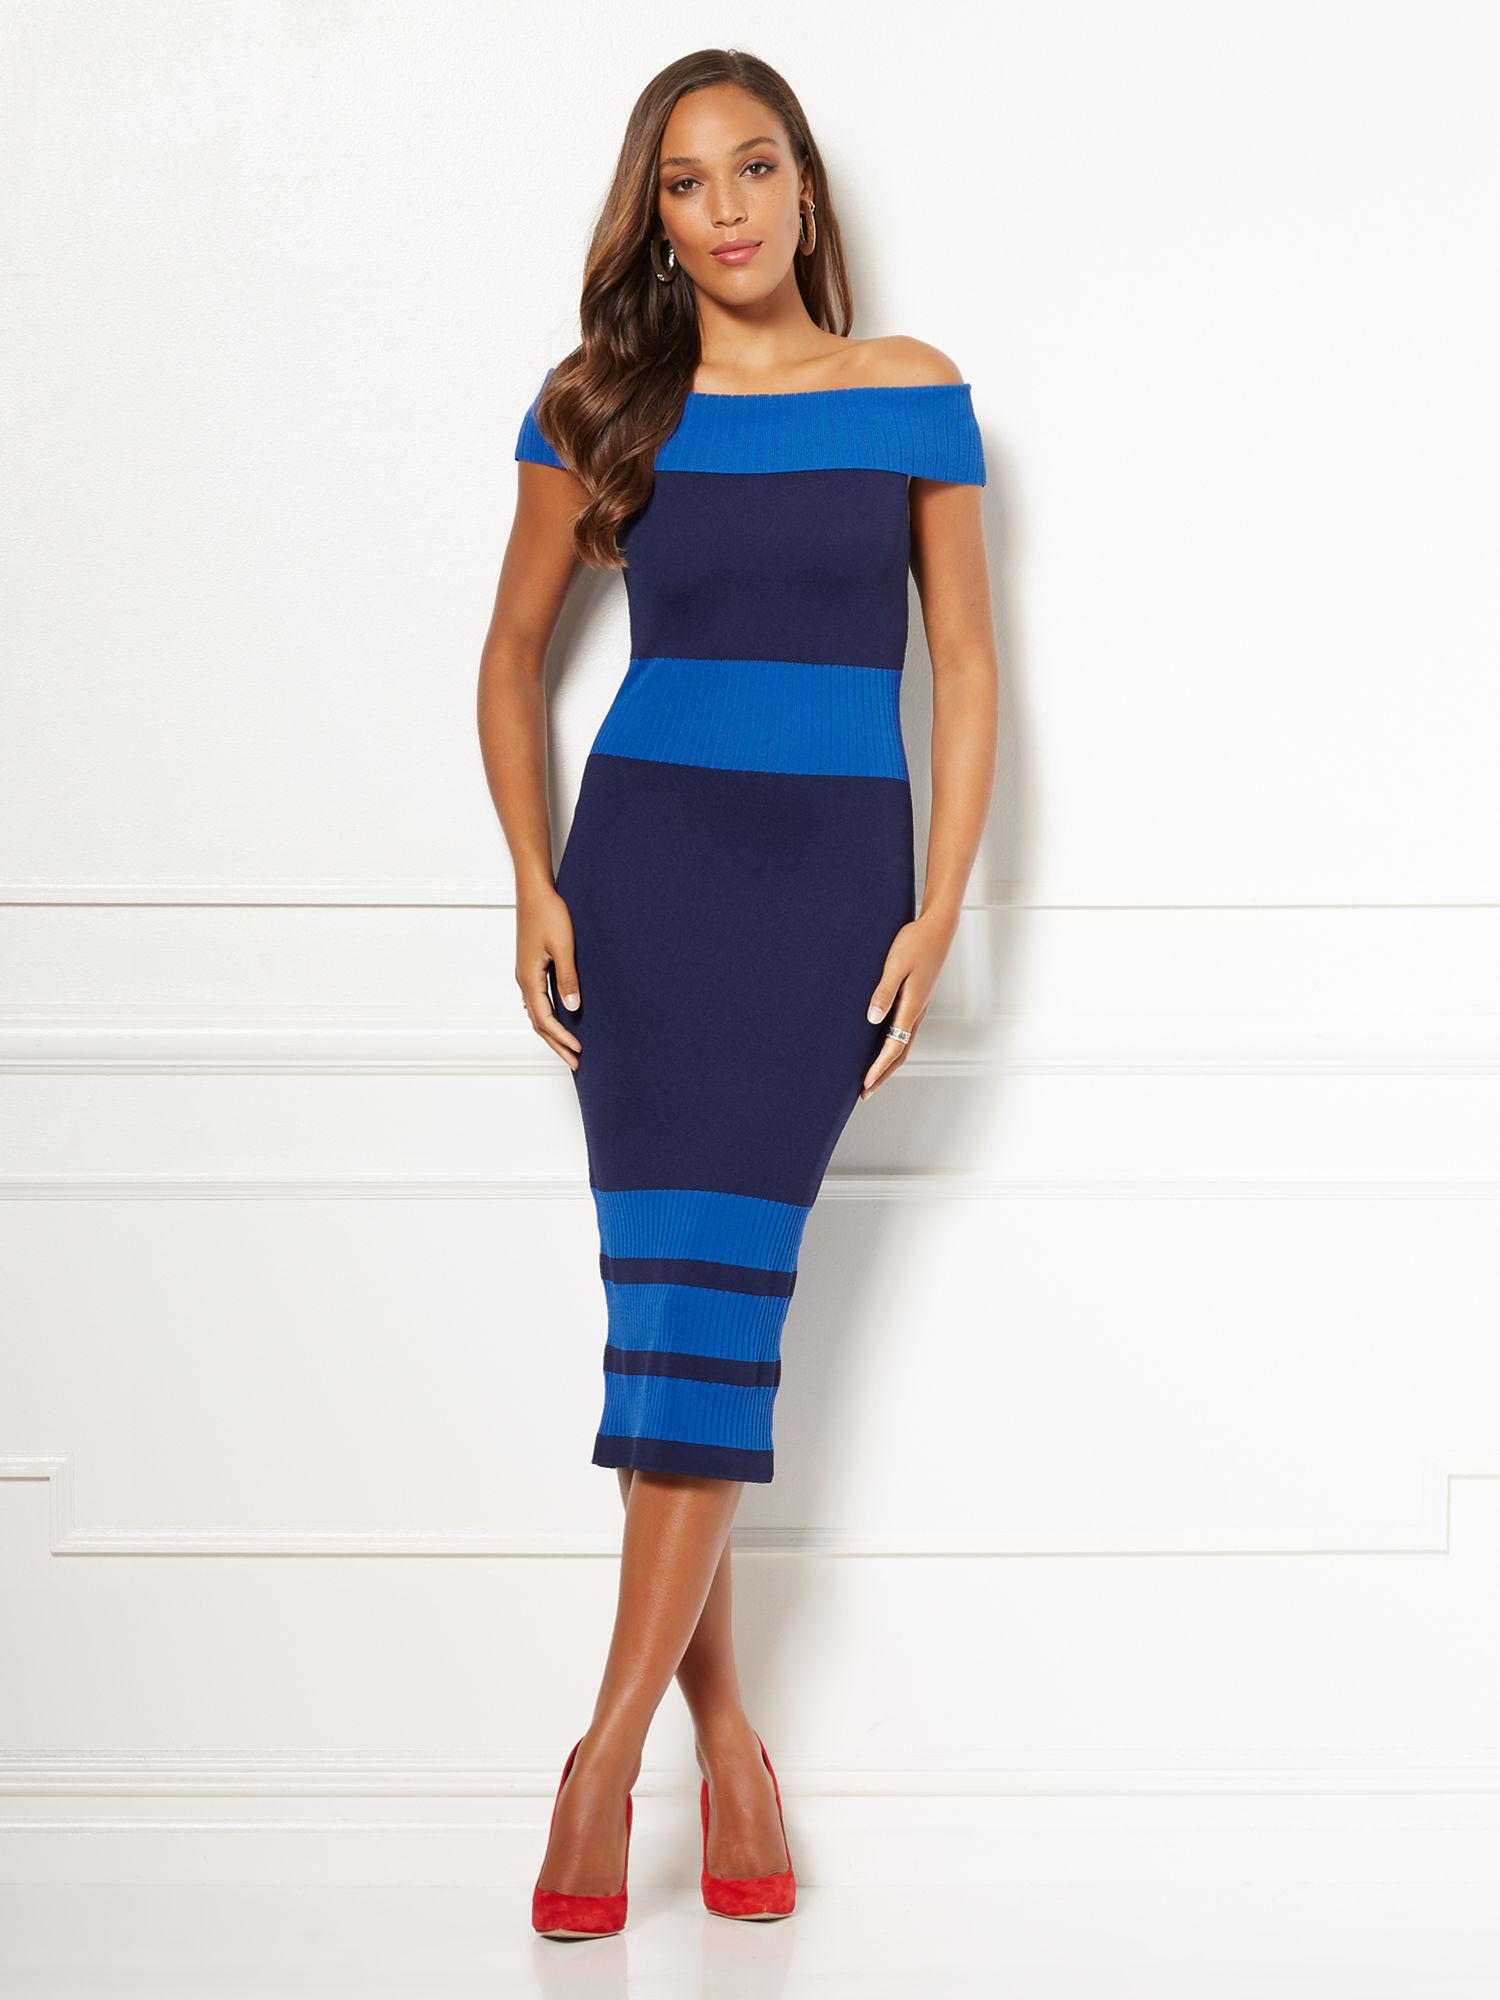 70f9a8ac9b1 New York   Company. Women s Blue Eva Mendes Collection - Chantelle Sweater  Dress